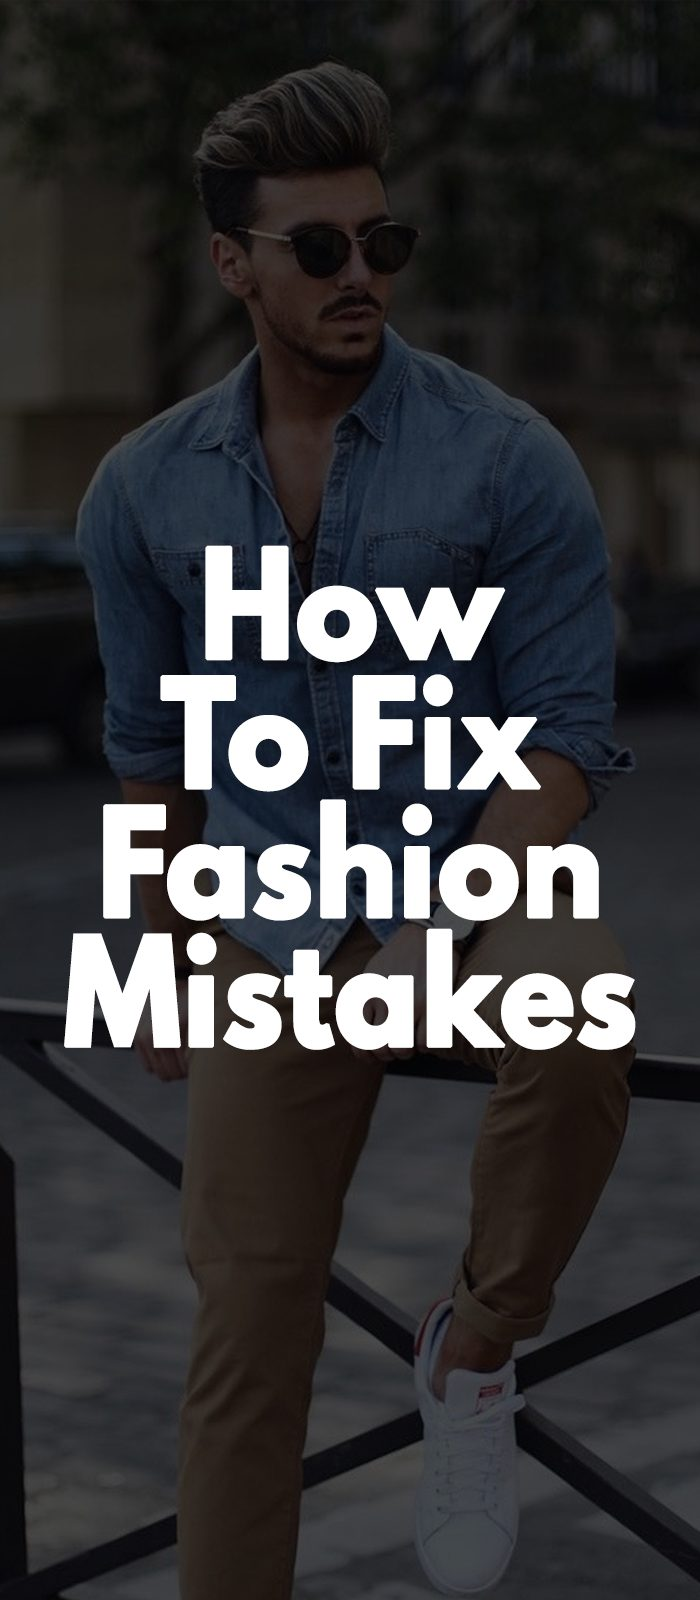 How To Fix Fashion Mistakes